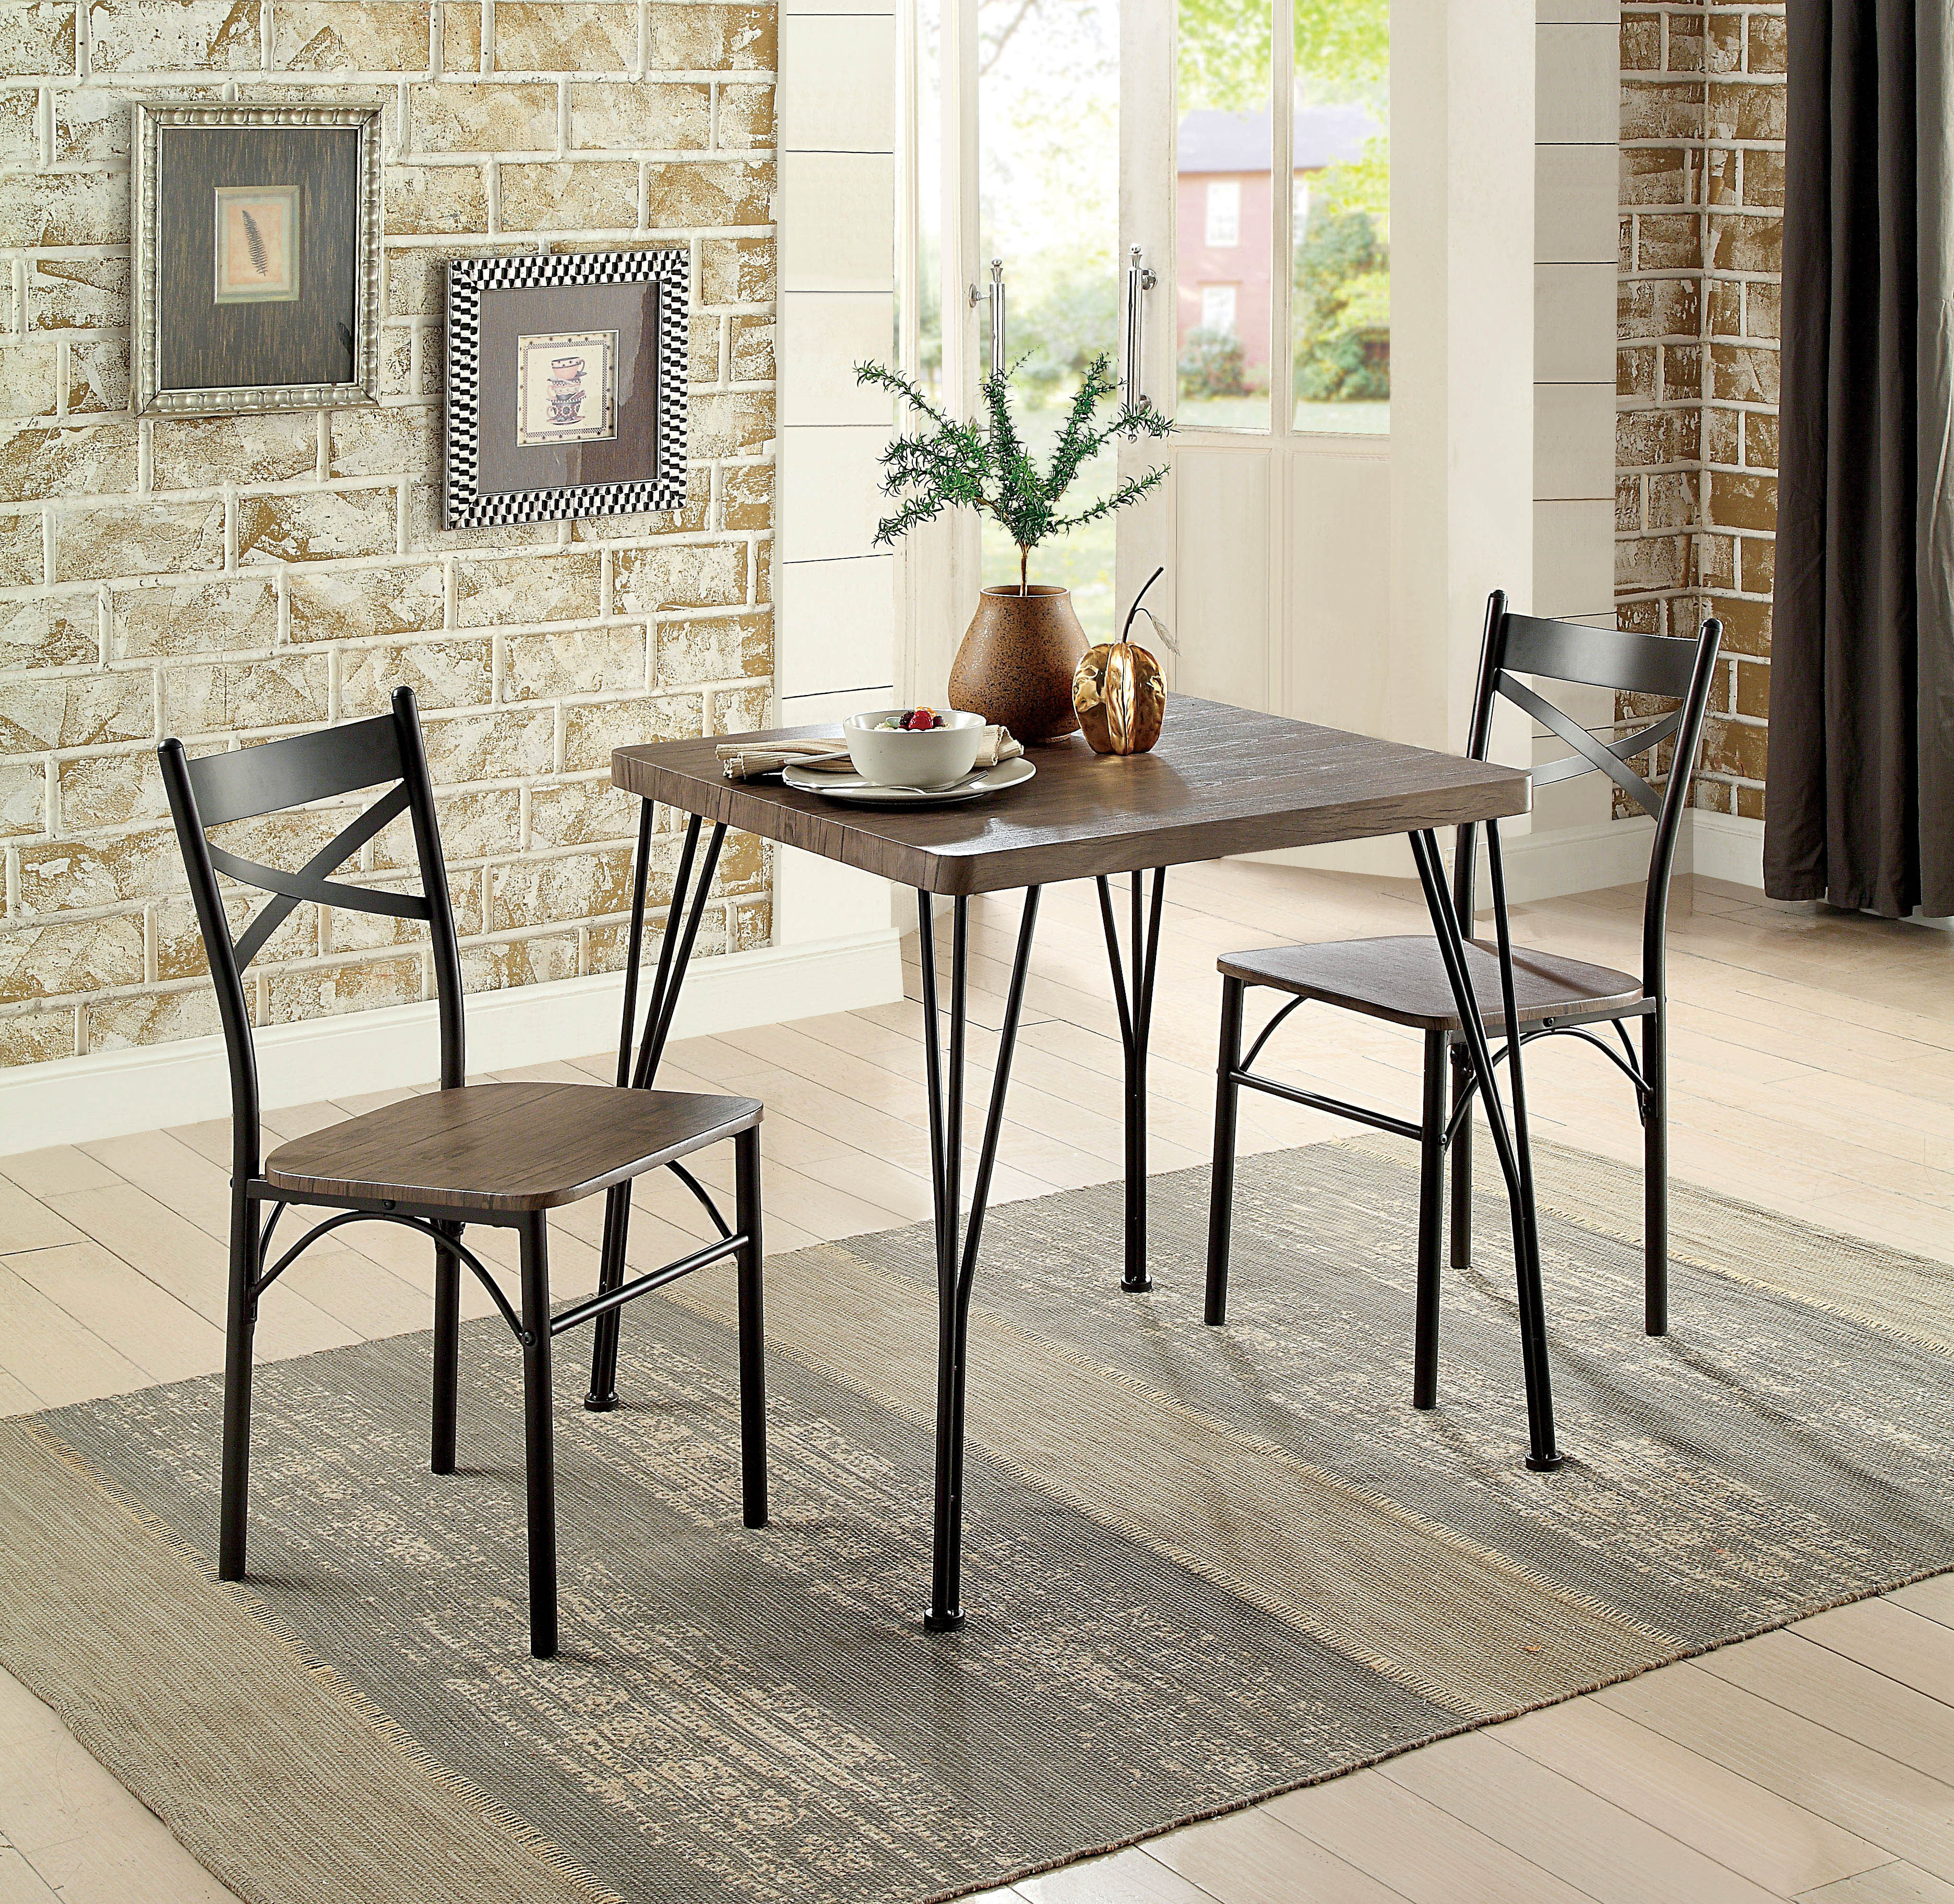 Kinsler 3 Piece Bistro Sets Intended For Best And Newest Guertin 3 Piece Dining Set (View 8 of 20)